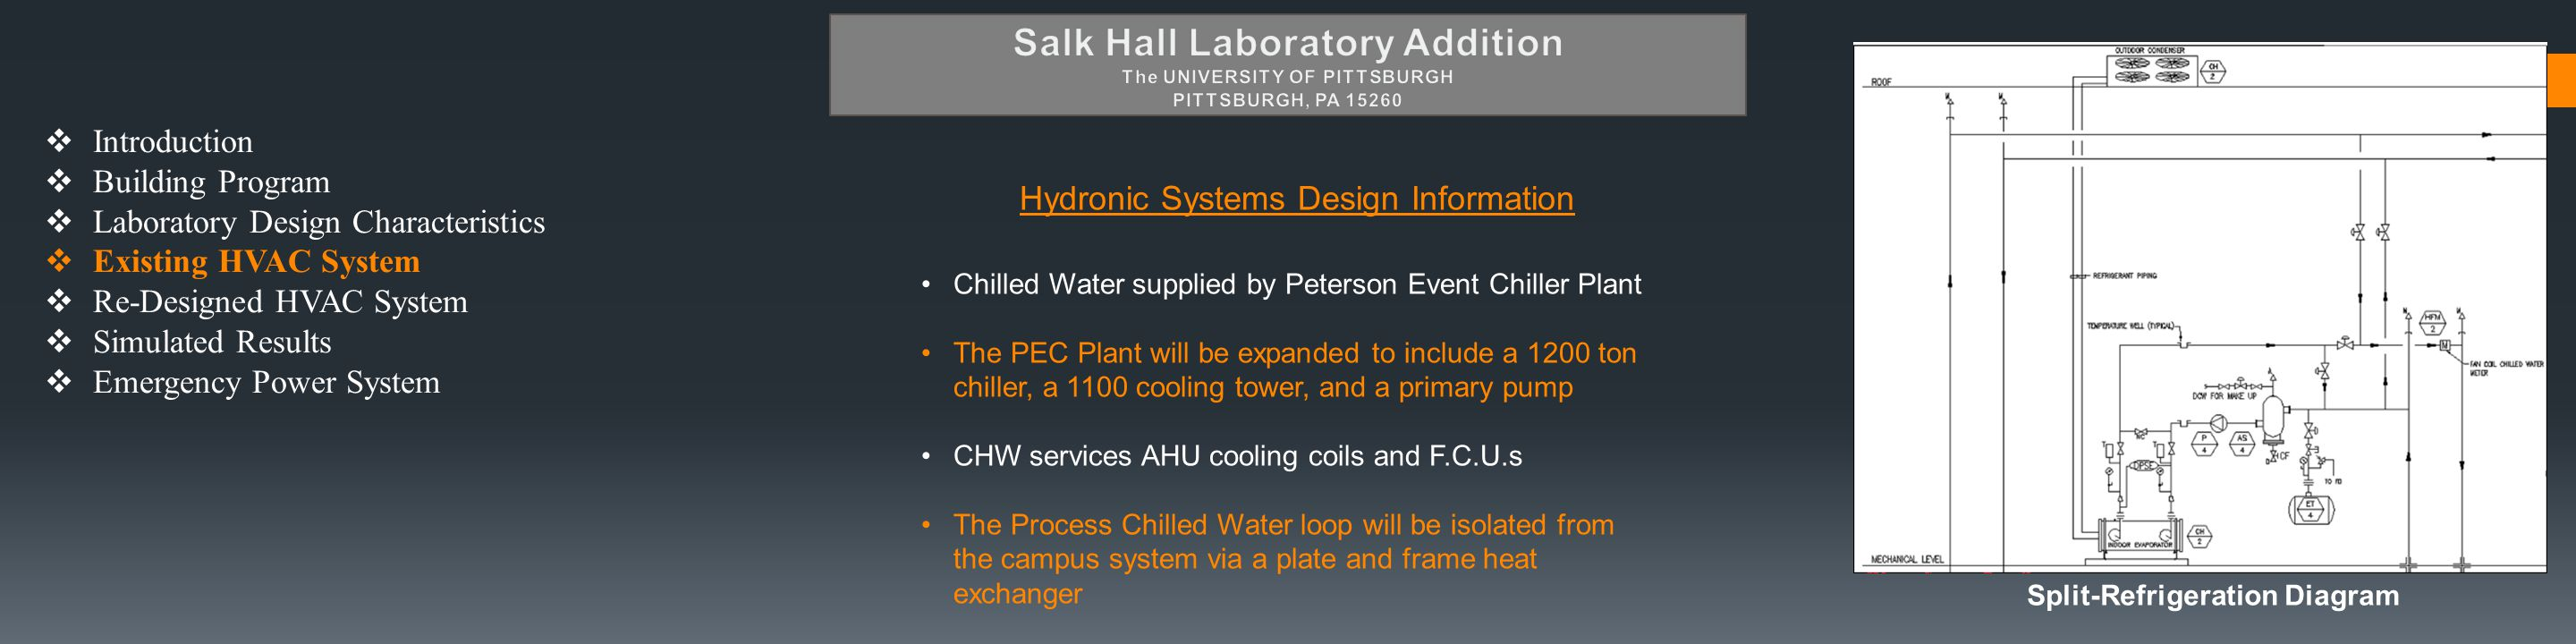  Introduction  Building Program  Laboratory Design Characteristics  Existing HVAC System  Re-Designed HVAC System  Simulated Results  Emergency Power System Hydronic Systems Design Information Chilled Water supplied by Peterson Event Chiller Plant The PEC Plant will be expanded to include a 1200 ton chiller, a 1100 cooling tower, and a primary pump CHW services AHU cooling coils and F.C.U.s The Process Chilled Water loop will be isolated from the campus system via a plate and frame heat exchanger Split-Refrigeration Diagram